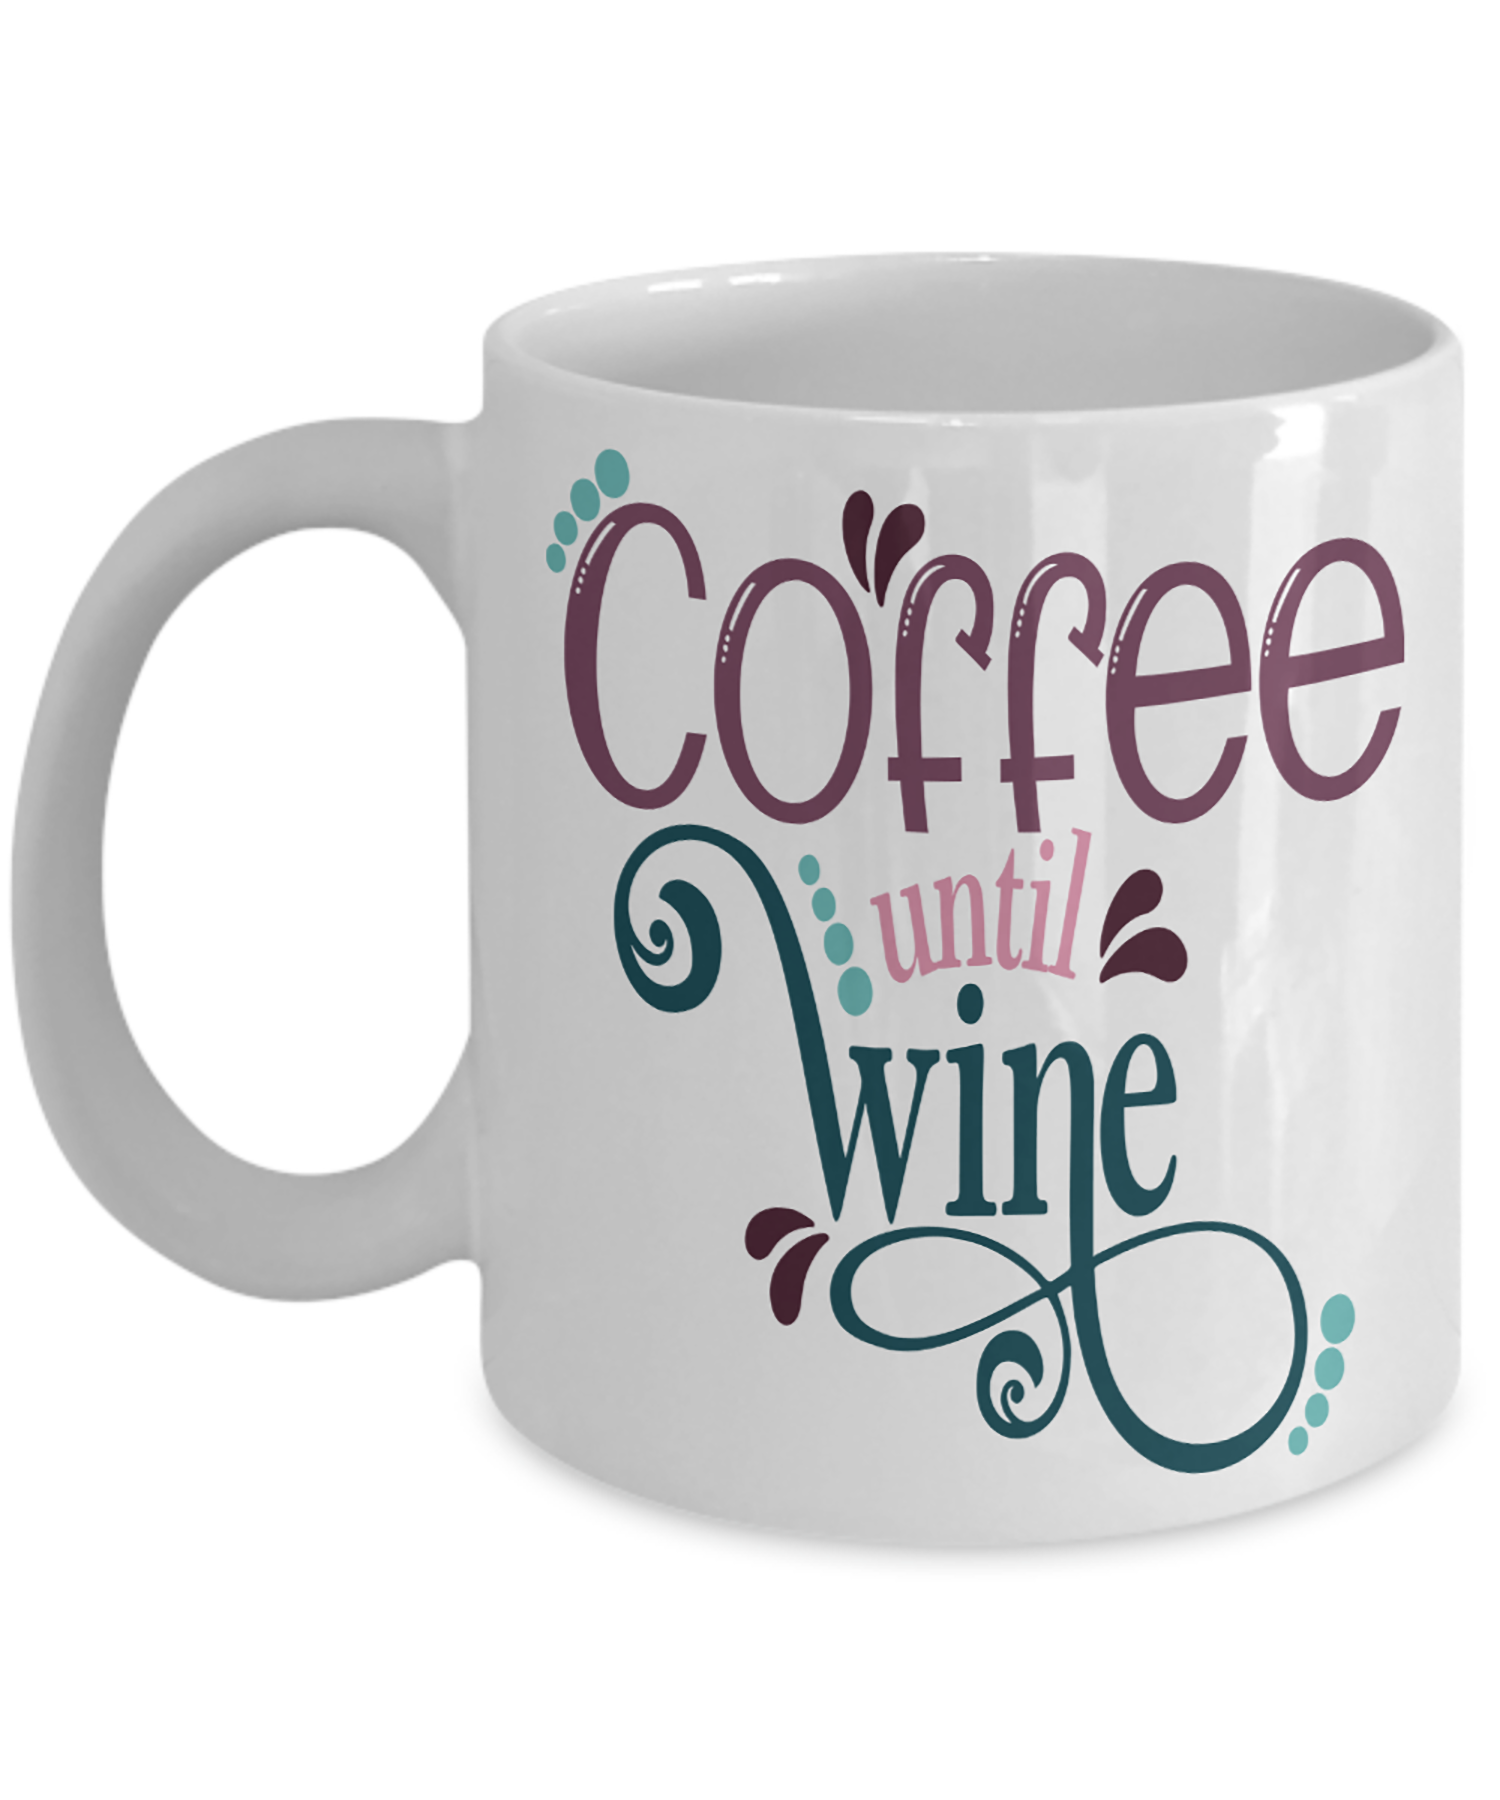 This coffee mug is available on Etsy